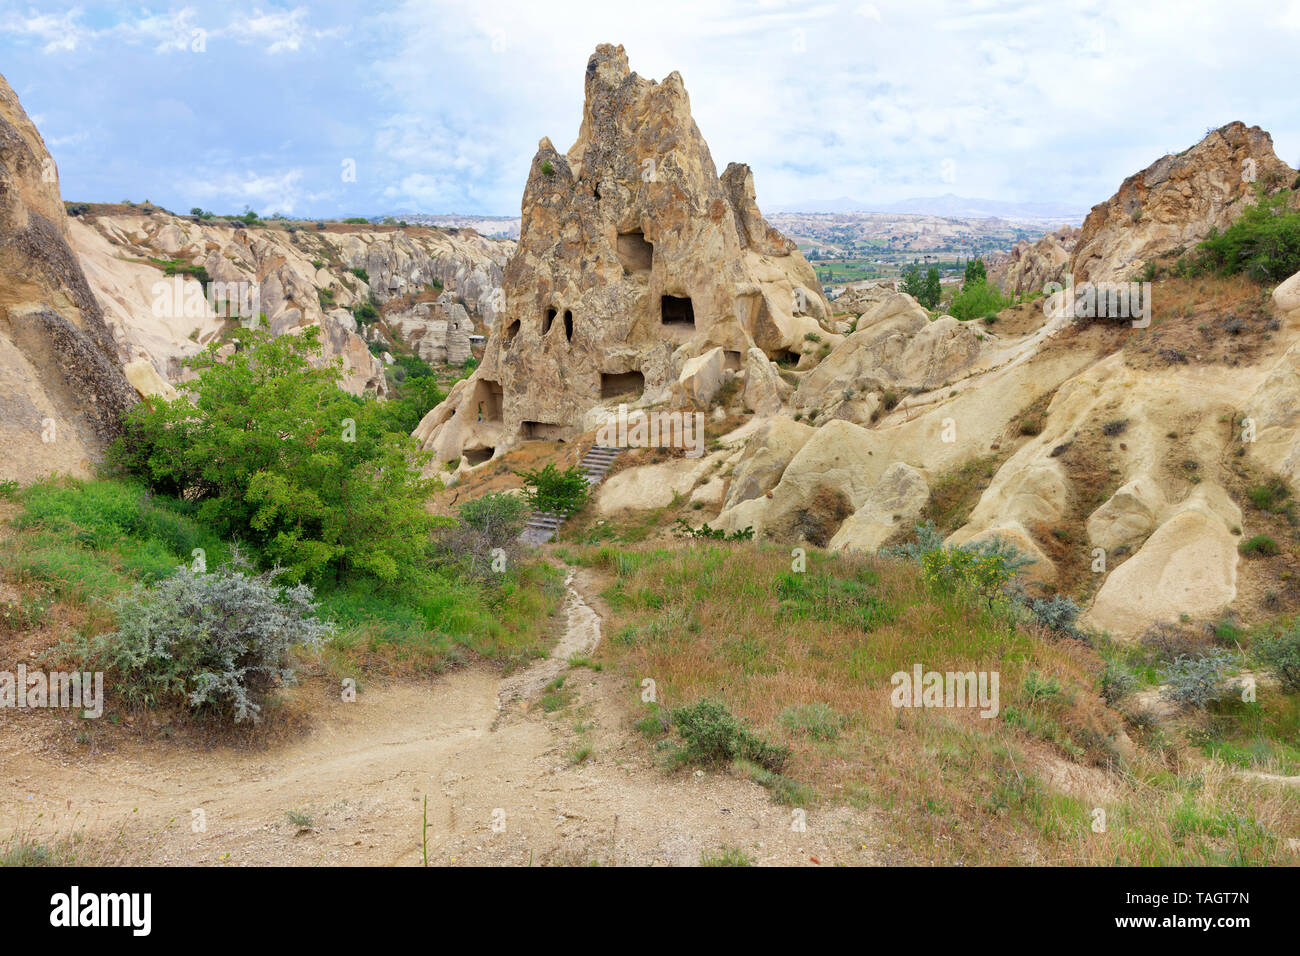 Antique landscape and view of ancient cone-shaped residential caves in the mountain landscape in the valleys of Cappadocia central Turkey - Stock Image